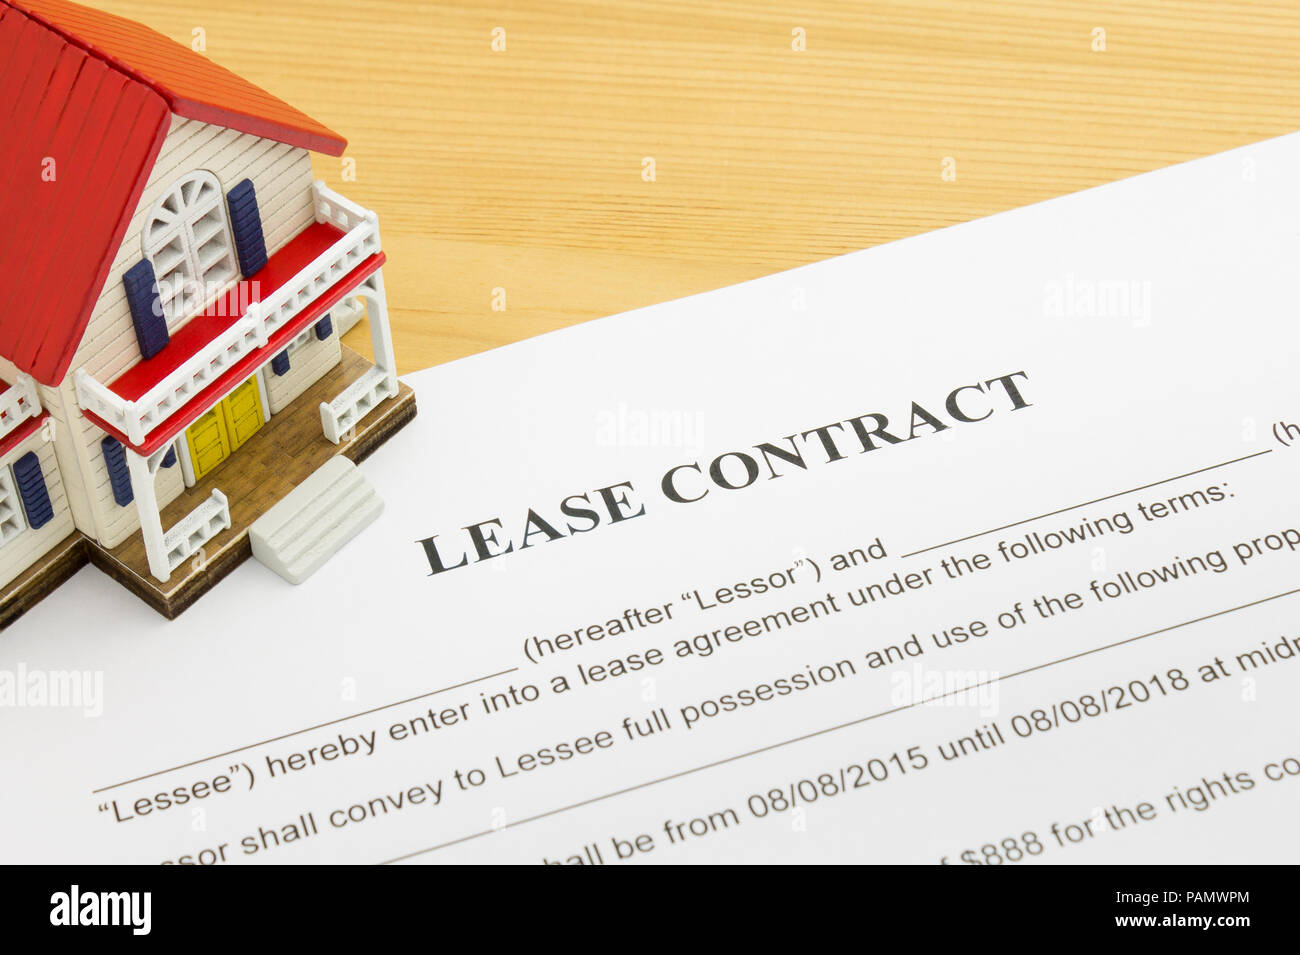 Hire Contract Stockfotos & Hire Contract Bilder - Alamy